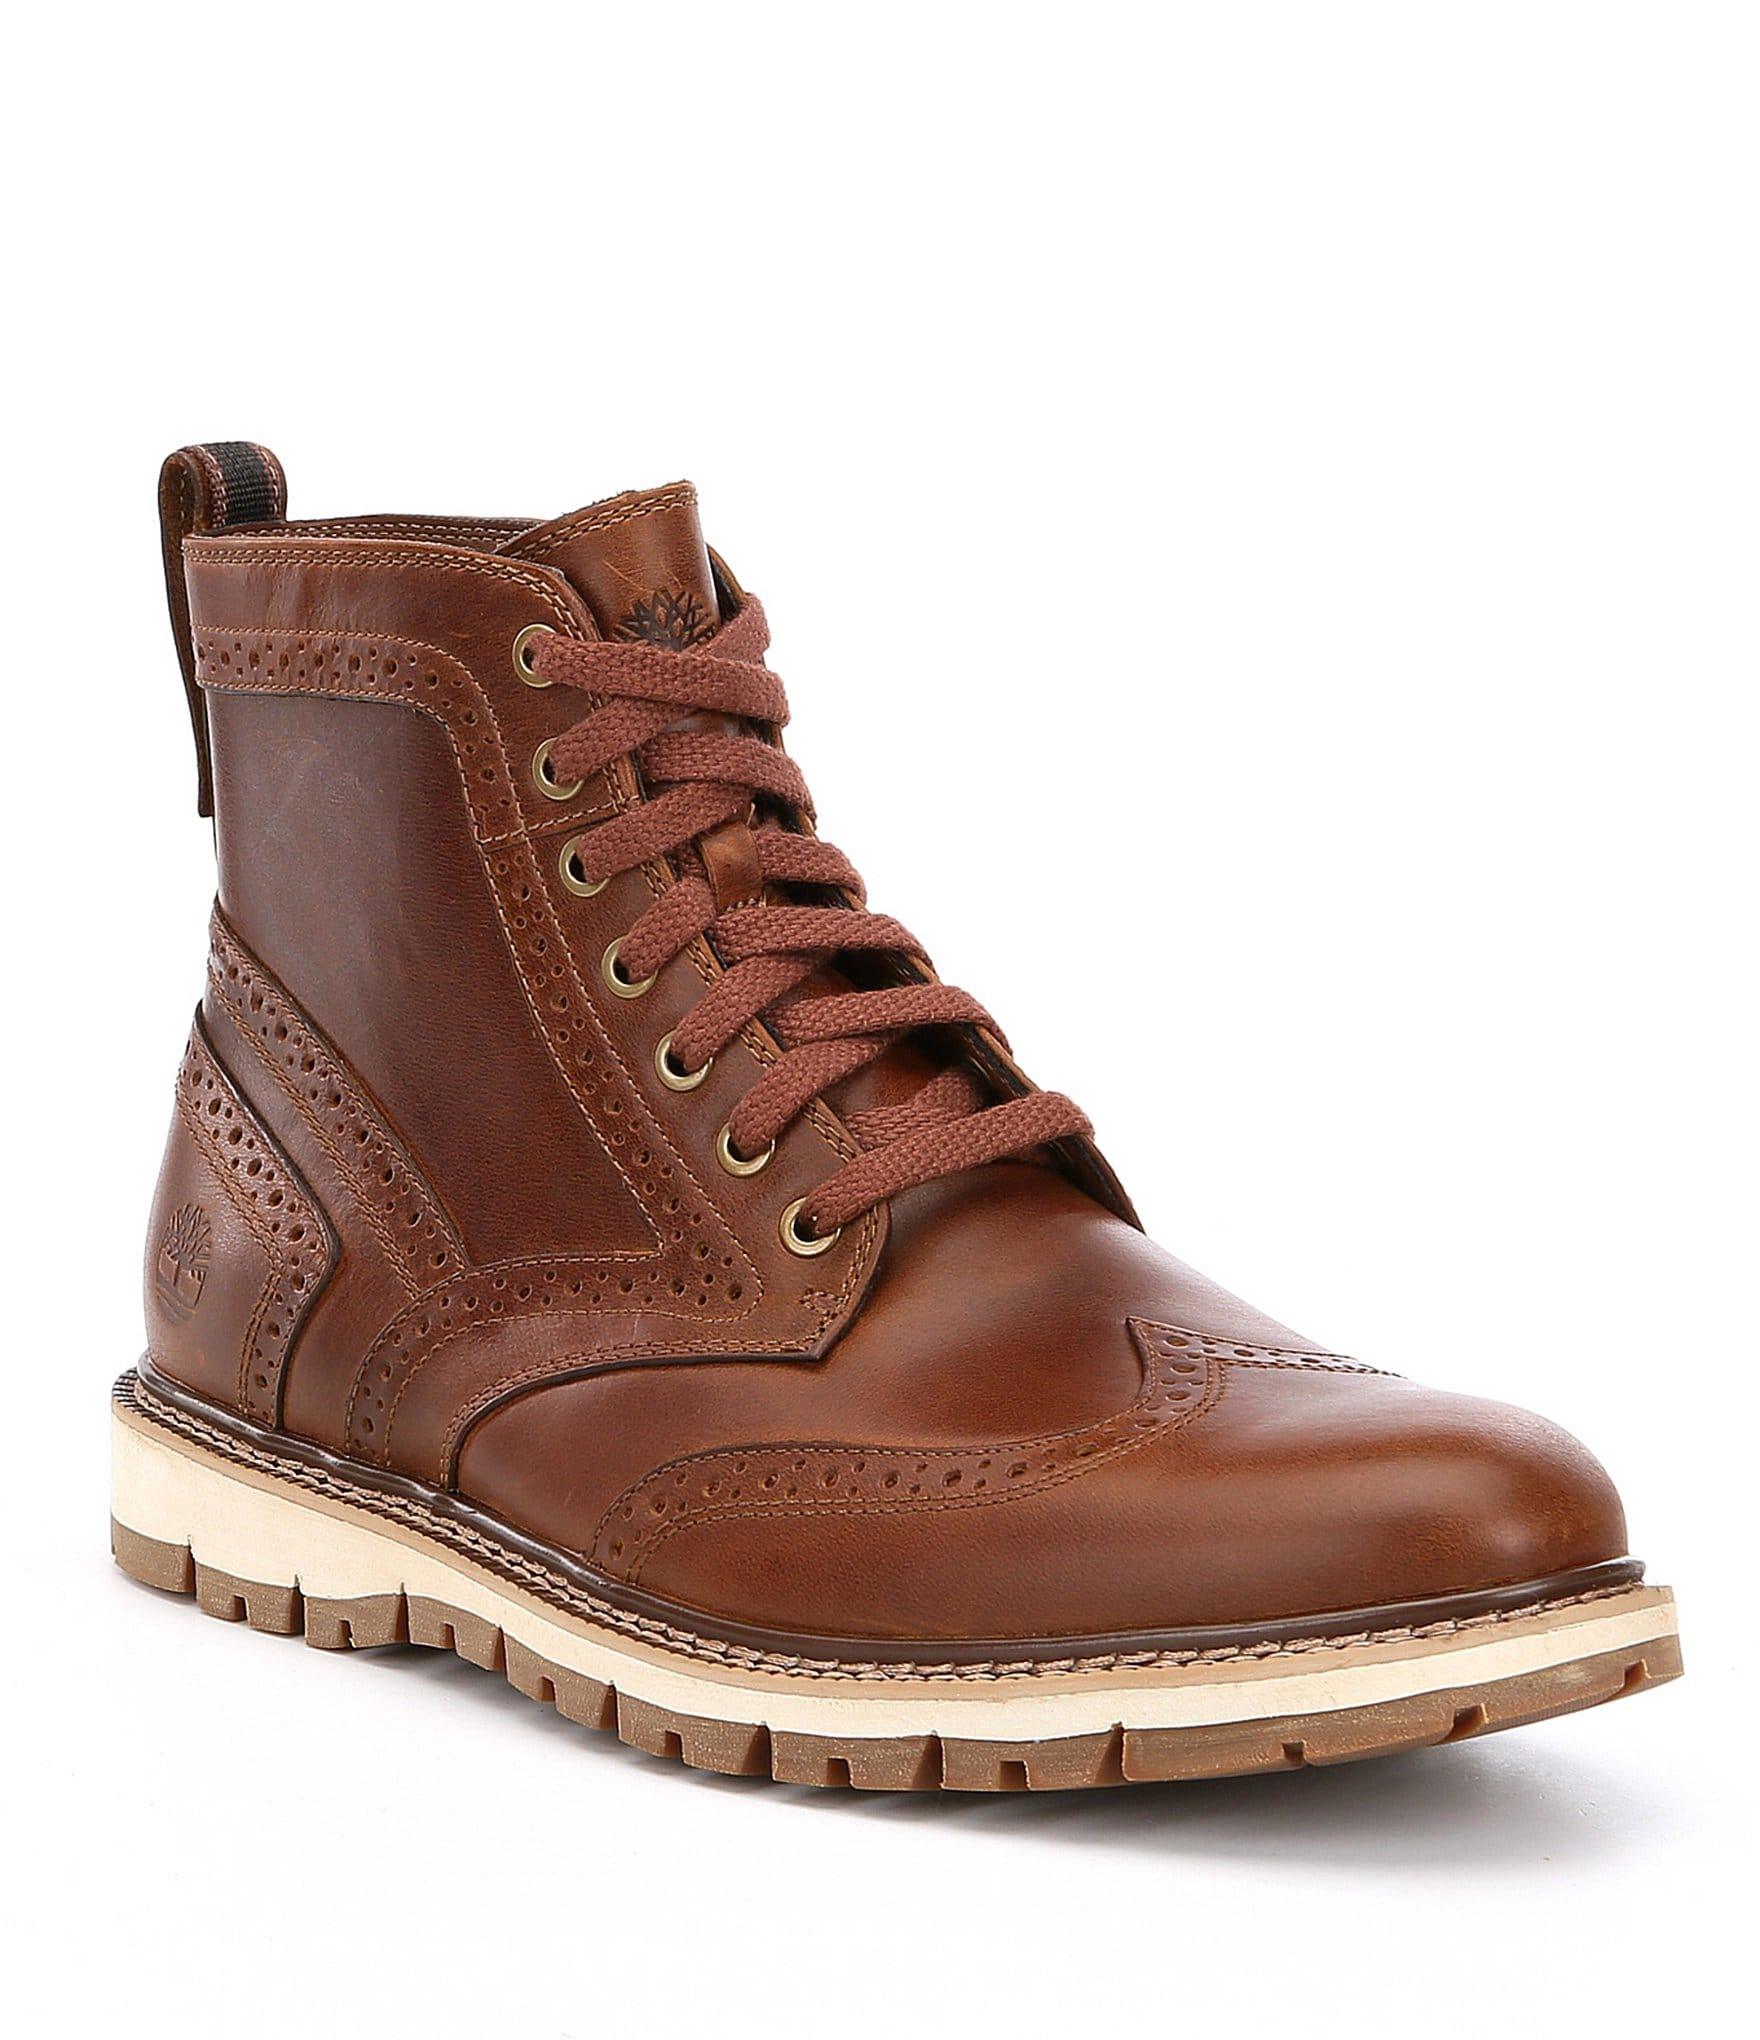 timberland men 39 s britton hill wingtip boots dillards. Black Bedroom Furniture Sets. Home Design Ideas